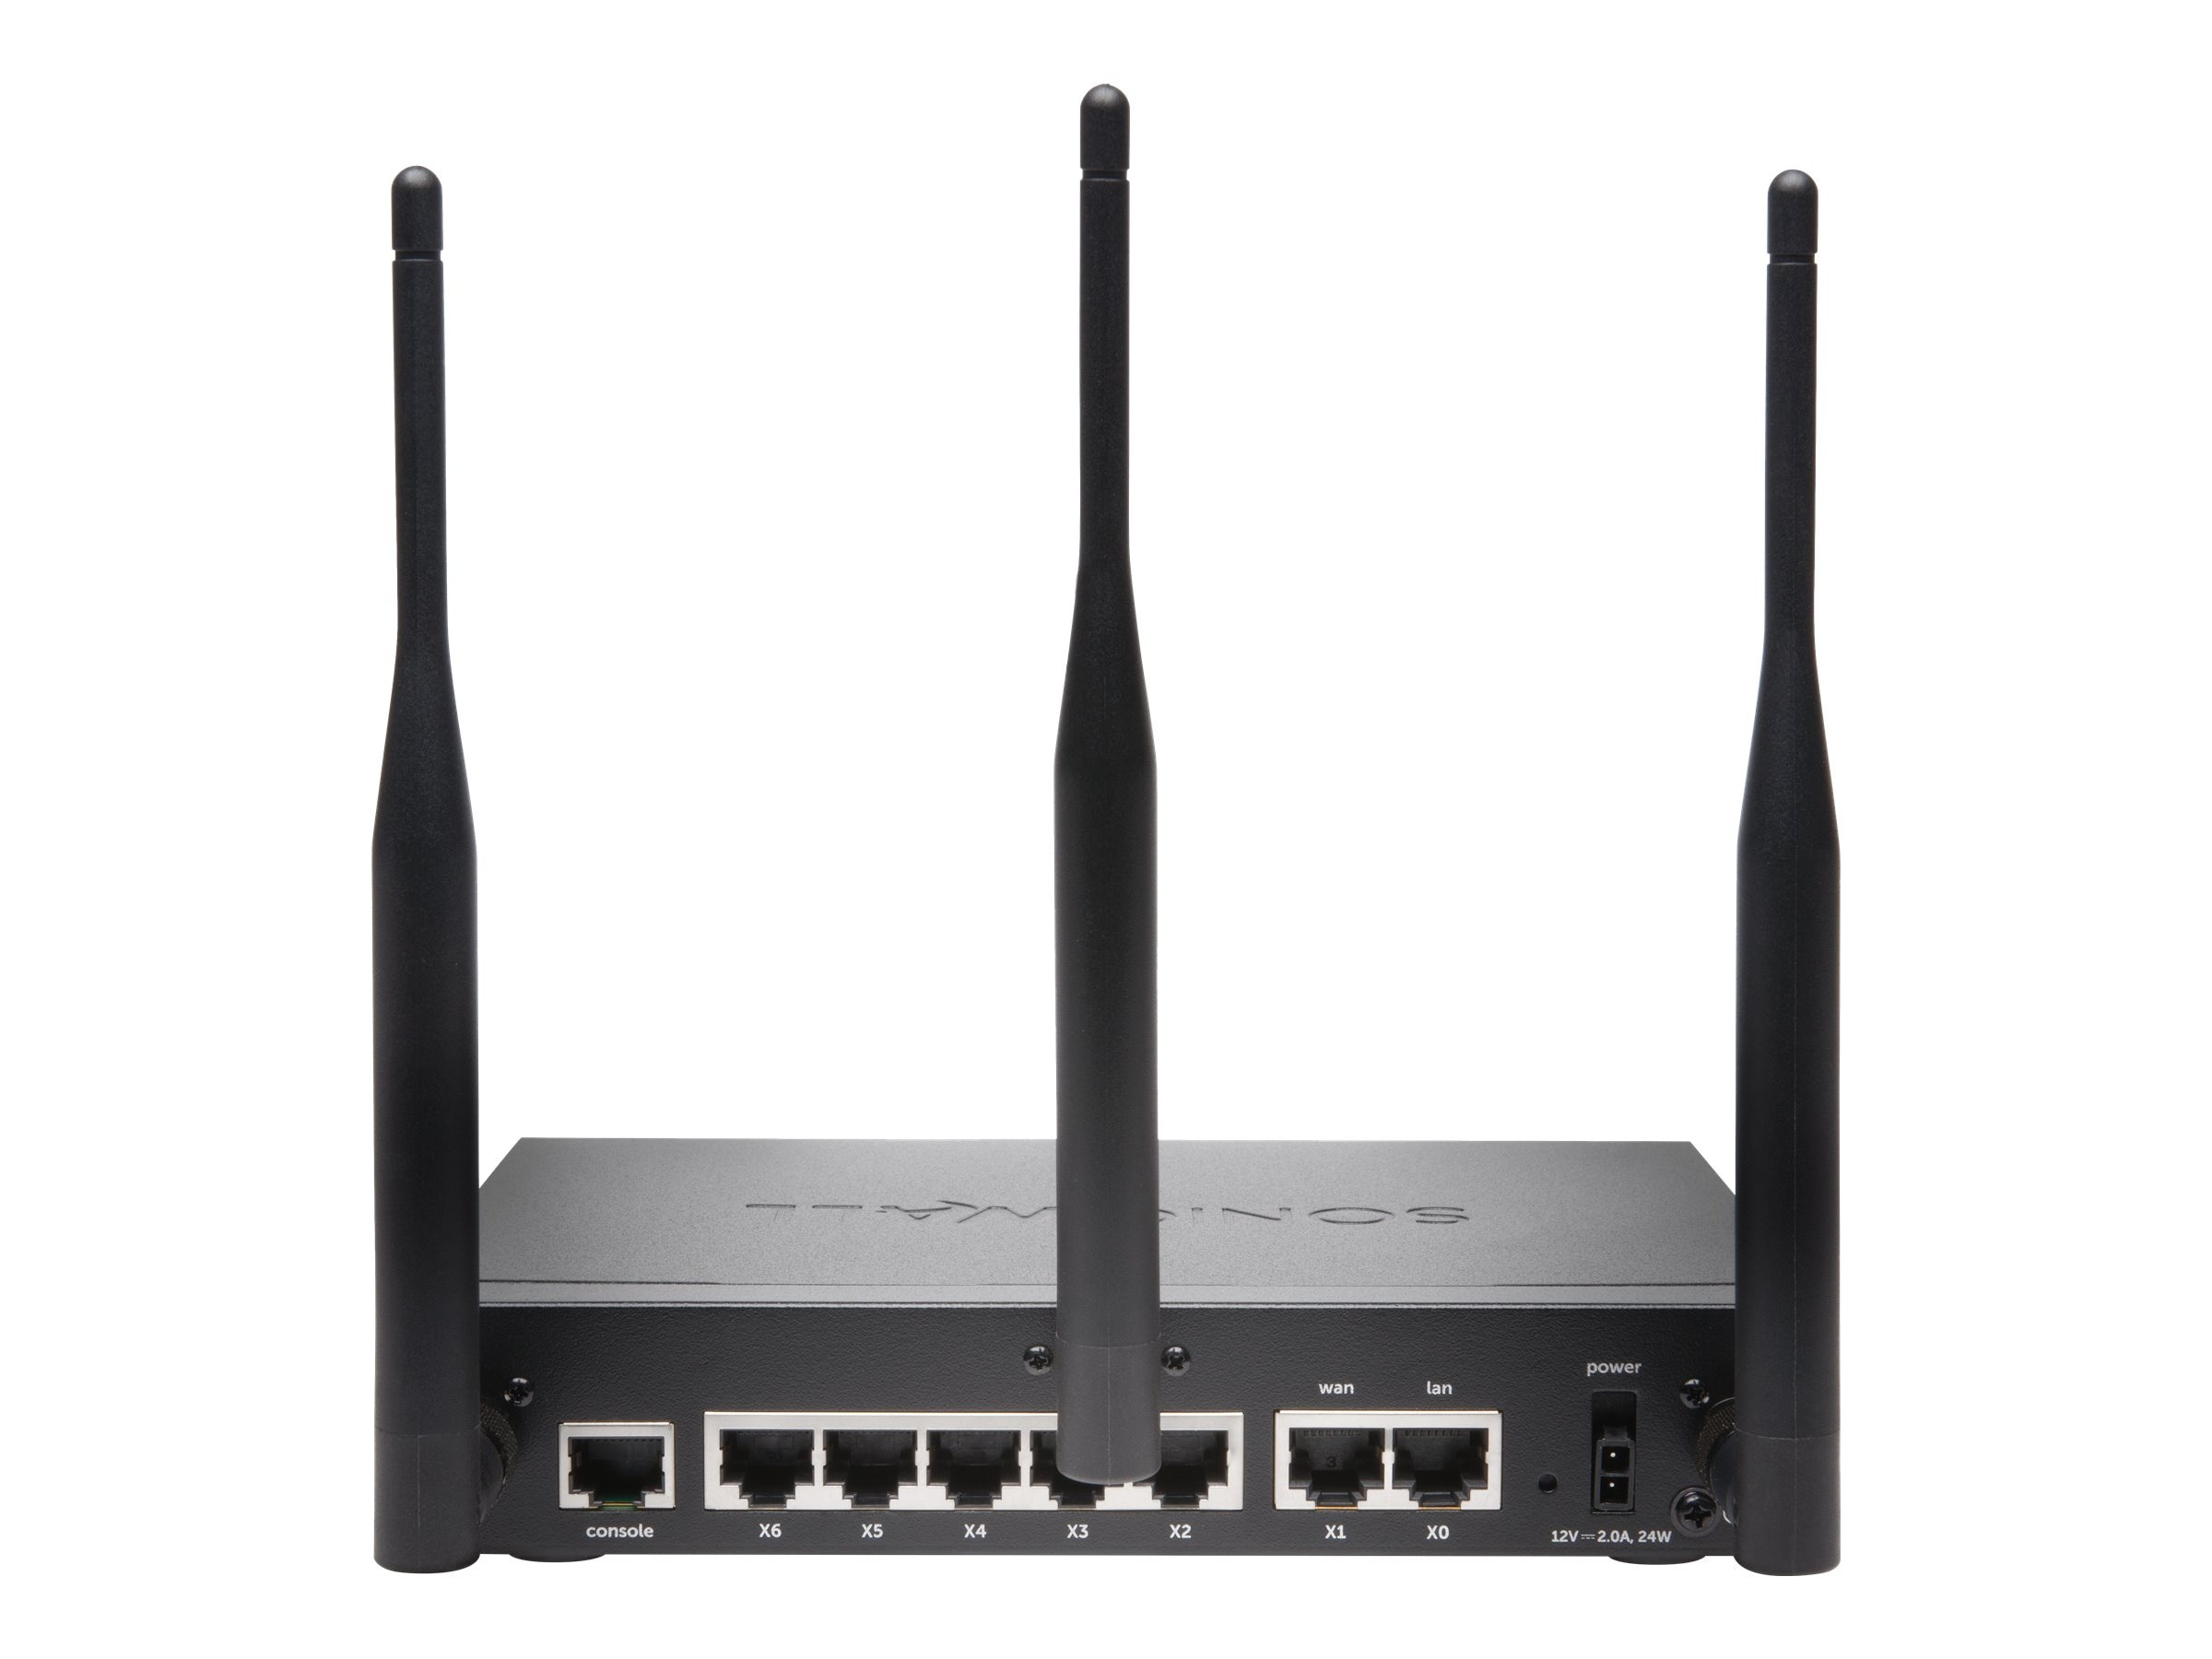 SonicWALL 01-SSC-0506 Image 4